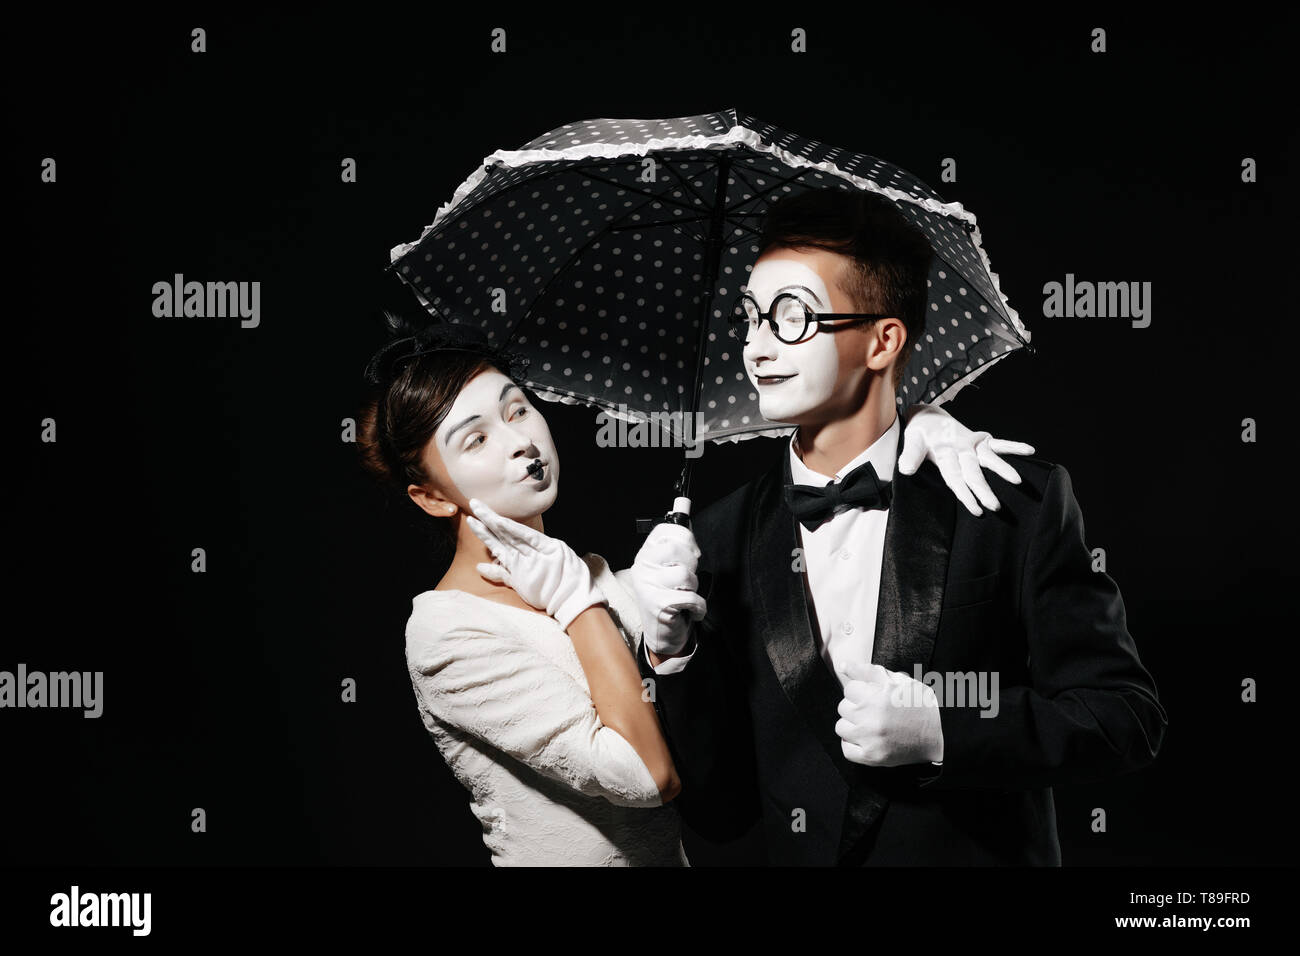 portrait of couple mime with umbrella on black background. man in tuxedo and glasses and woman in white dress - Stock Image